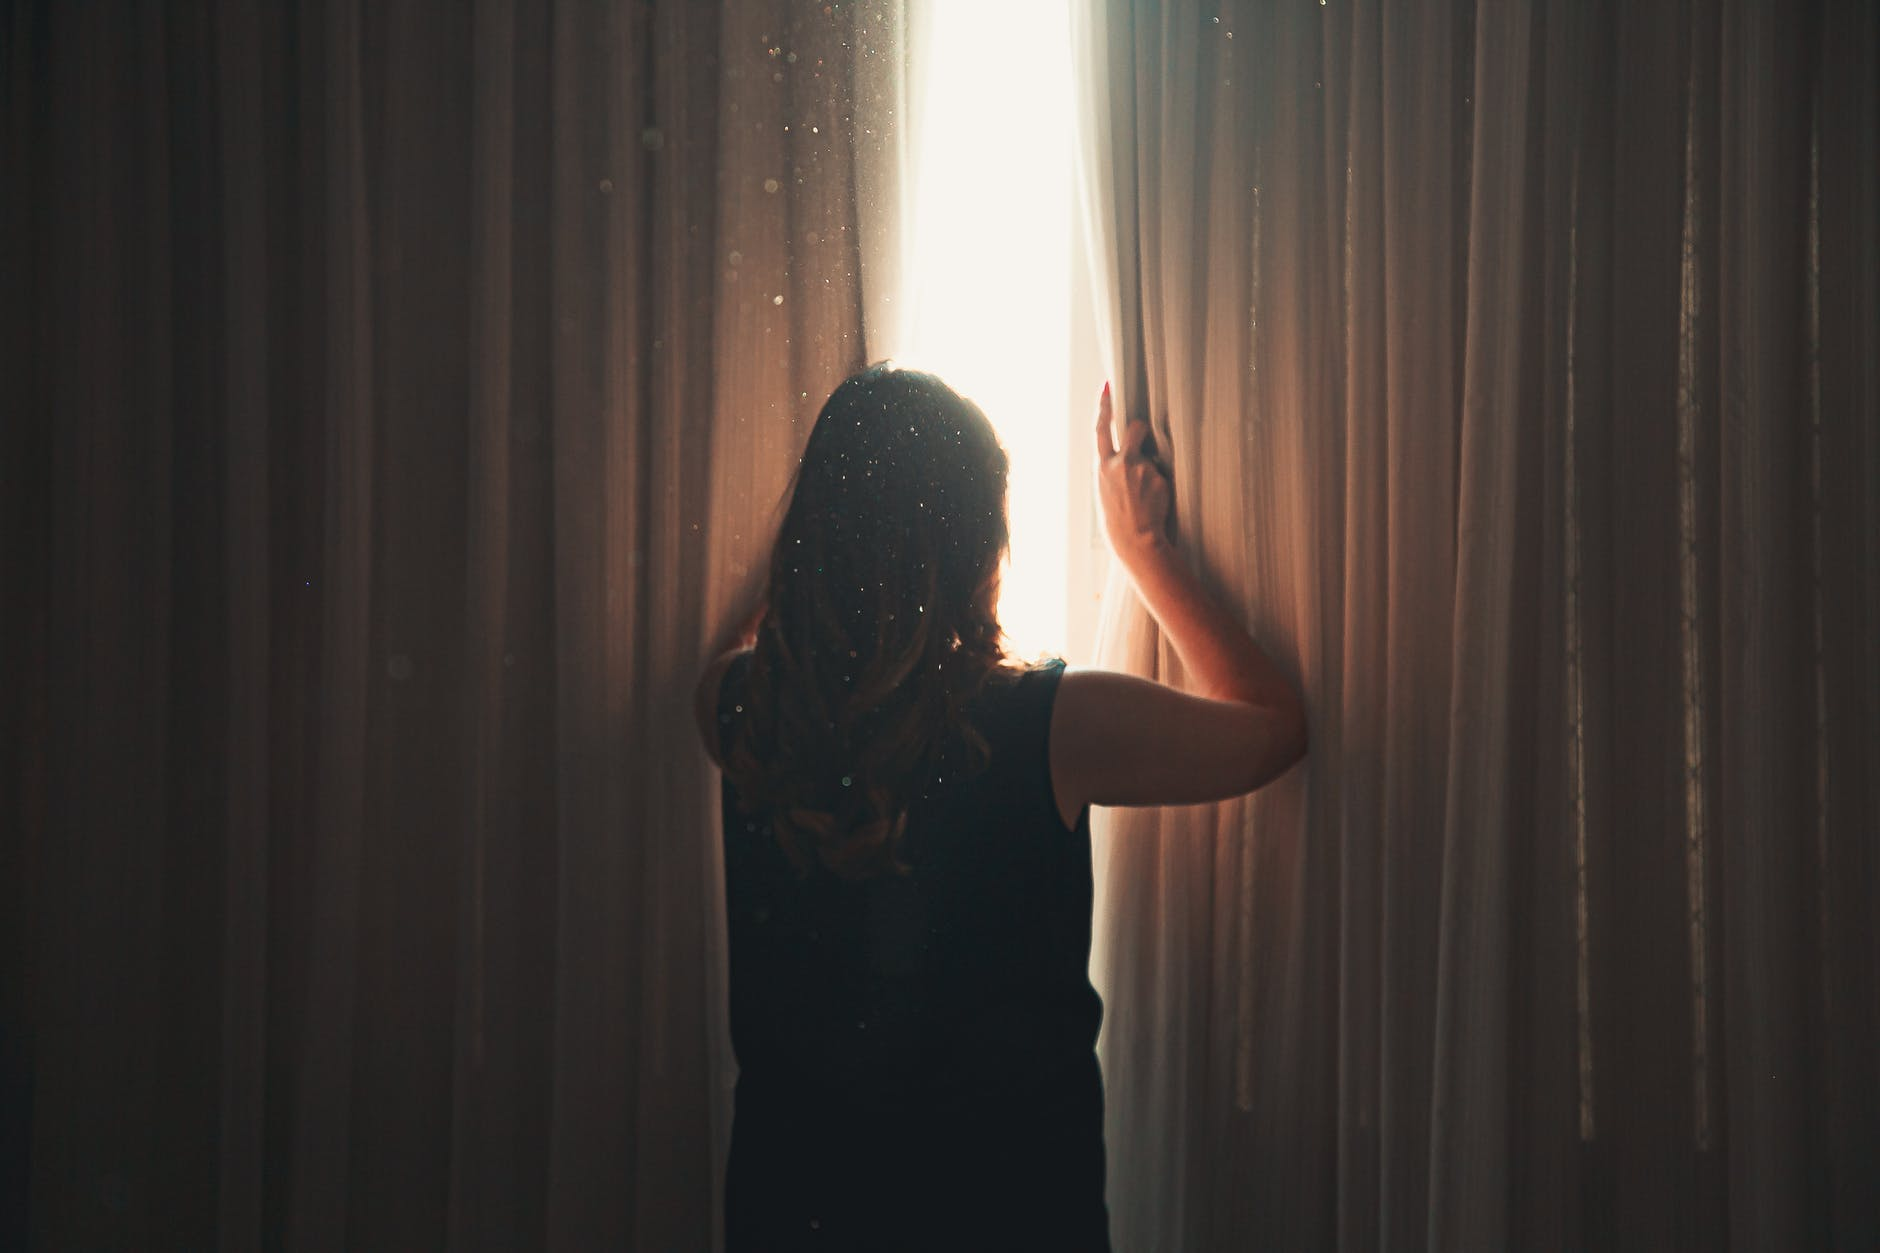 Unrecognizable woman opening window curtain in shining daylight